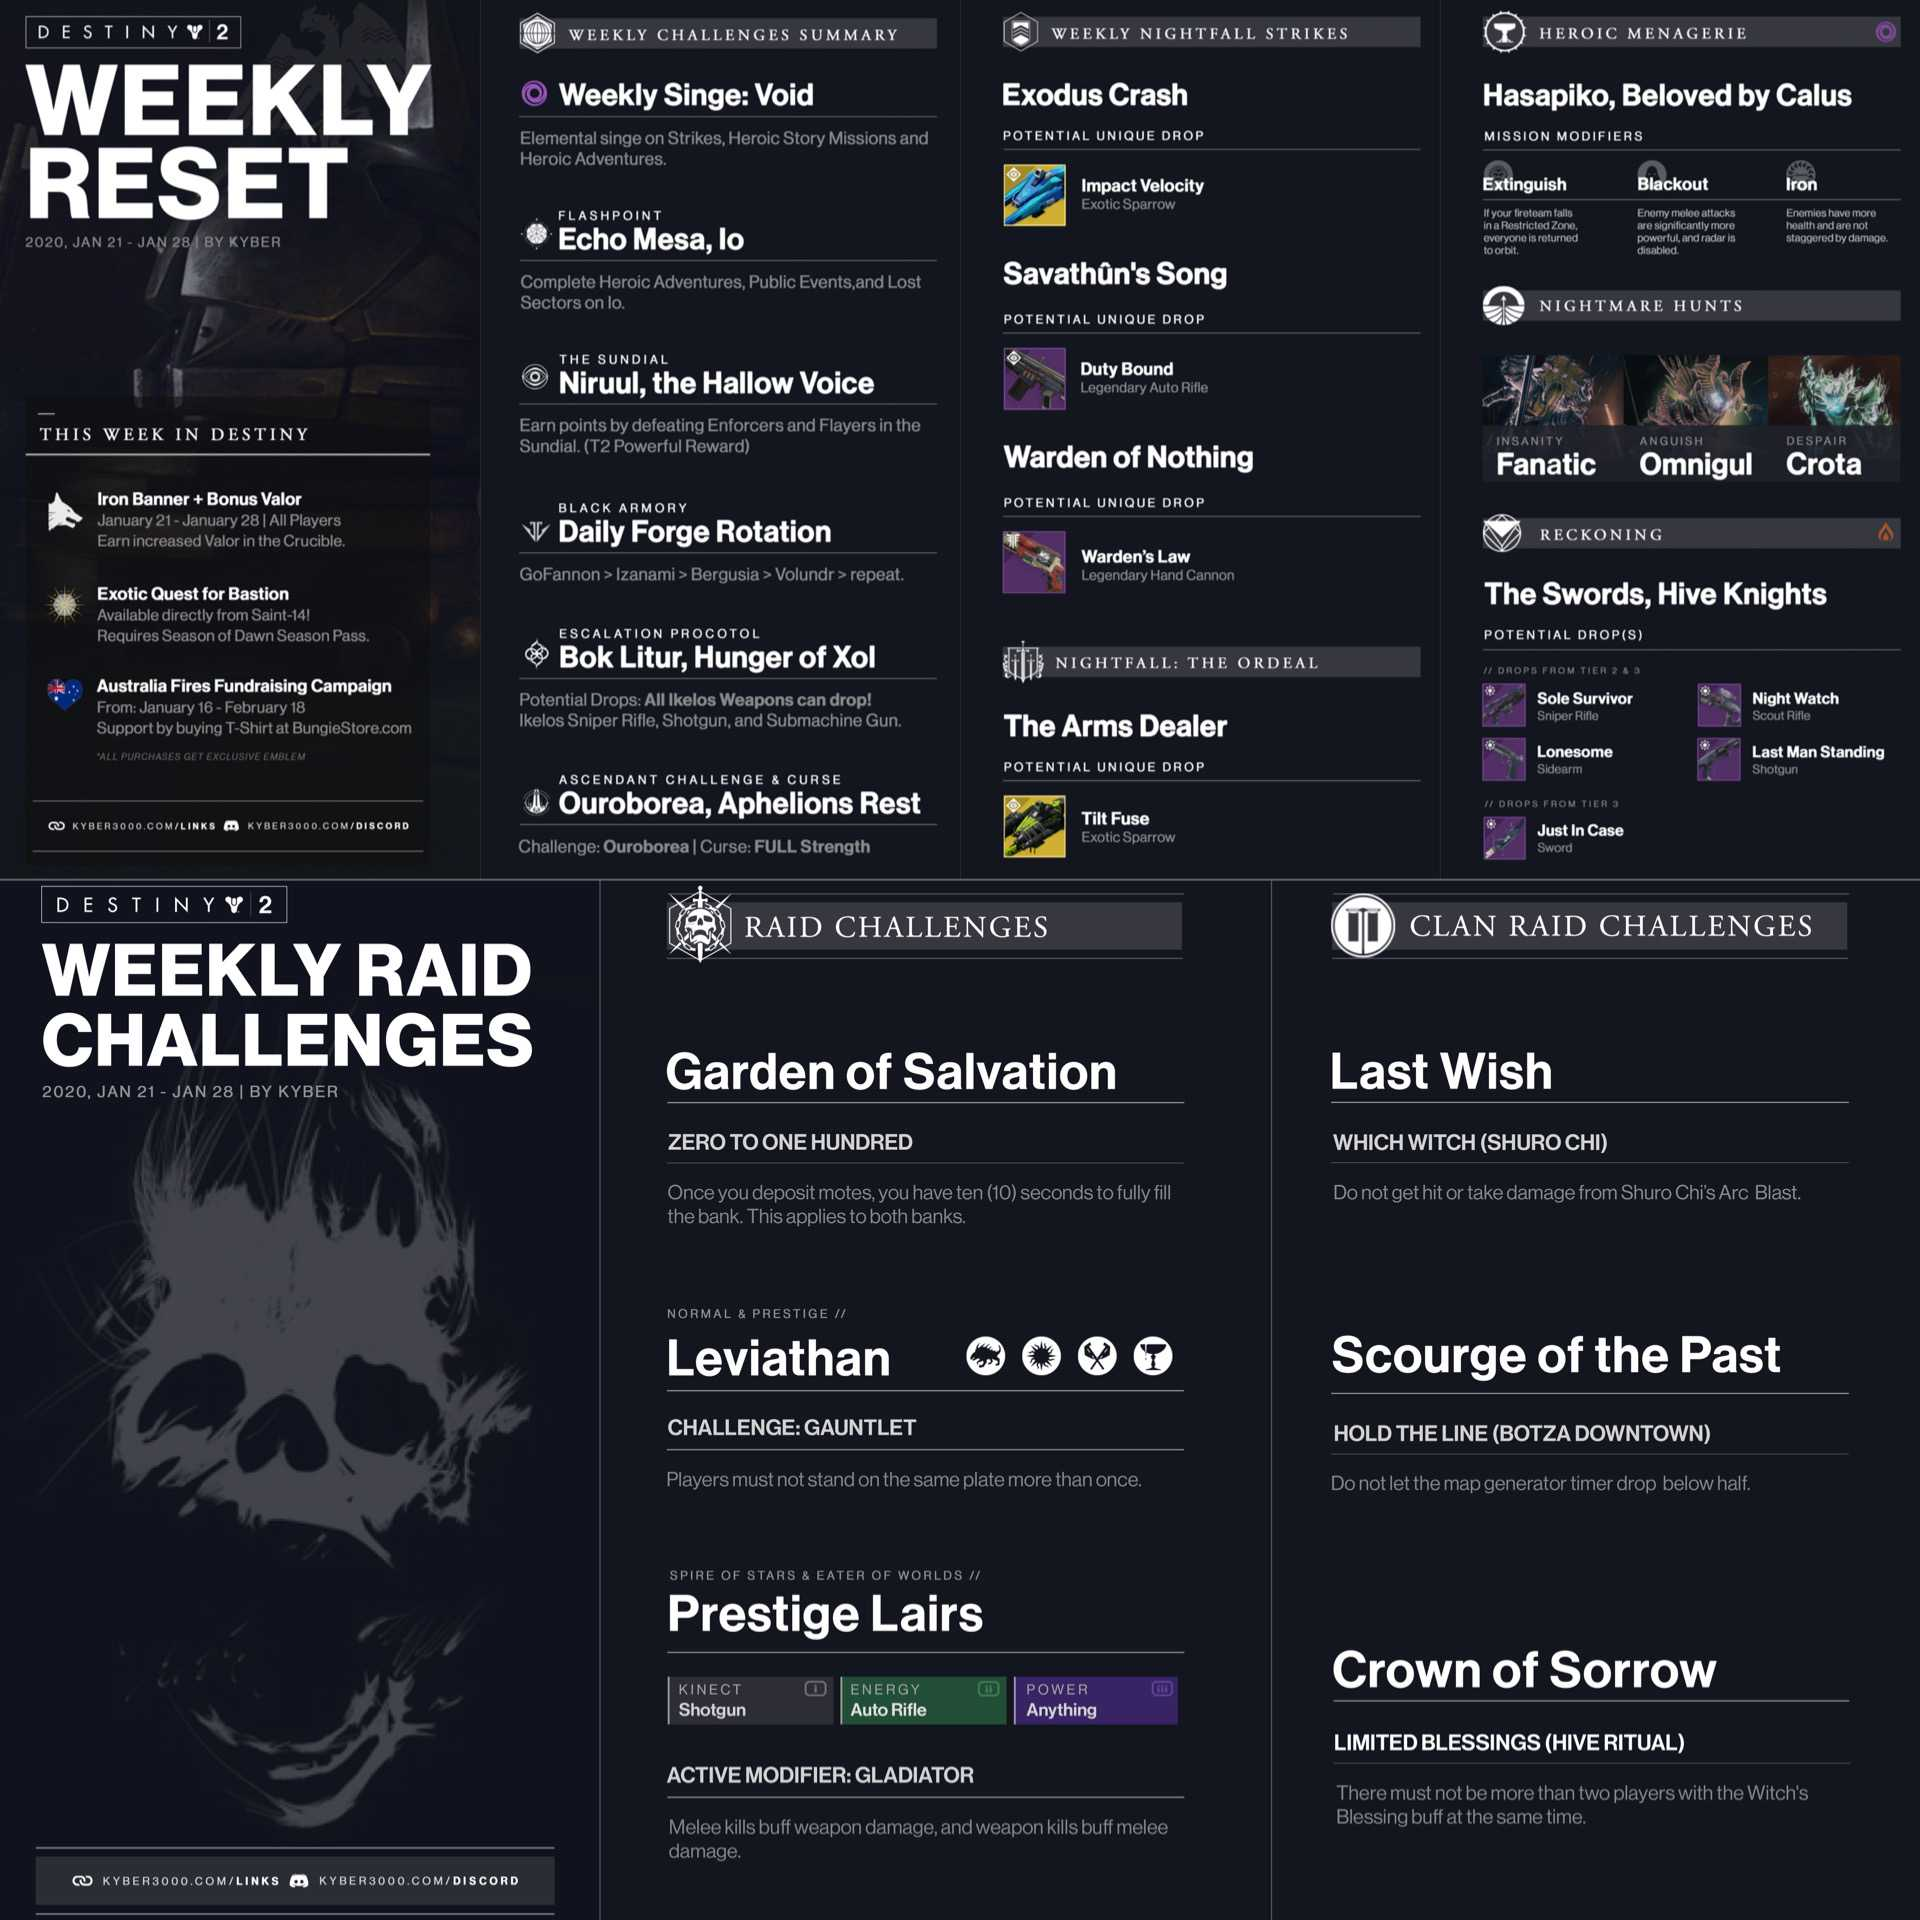 bergusia forge shadowkeep, black armory calendar, black armory forge rotation, Destiny 2, destiny 2 forge rotation, Forge Rotation, forge rotation destiny 2, season of the forge schedule, what forge is today destiny 2